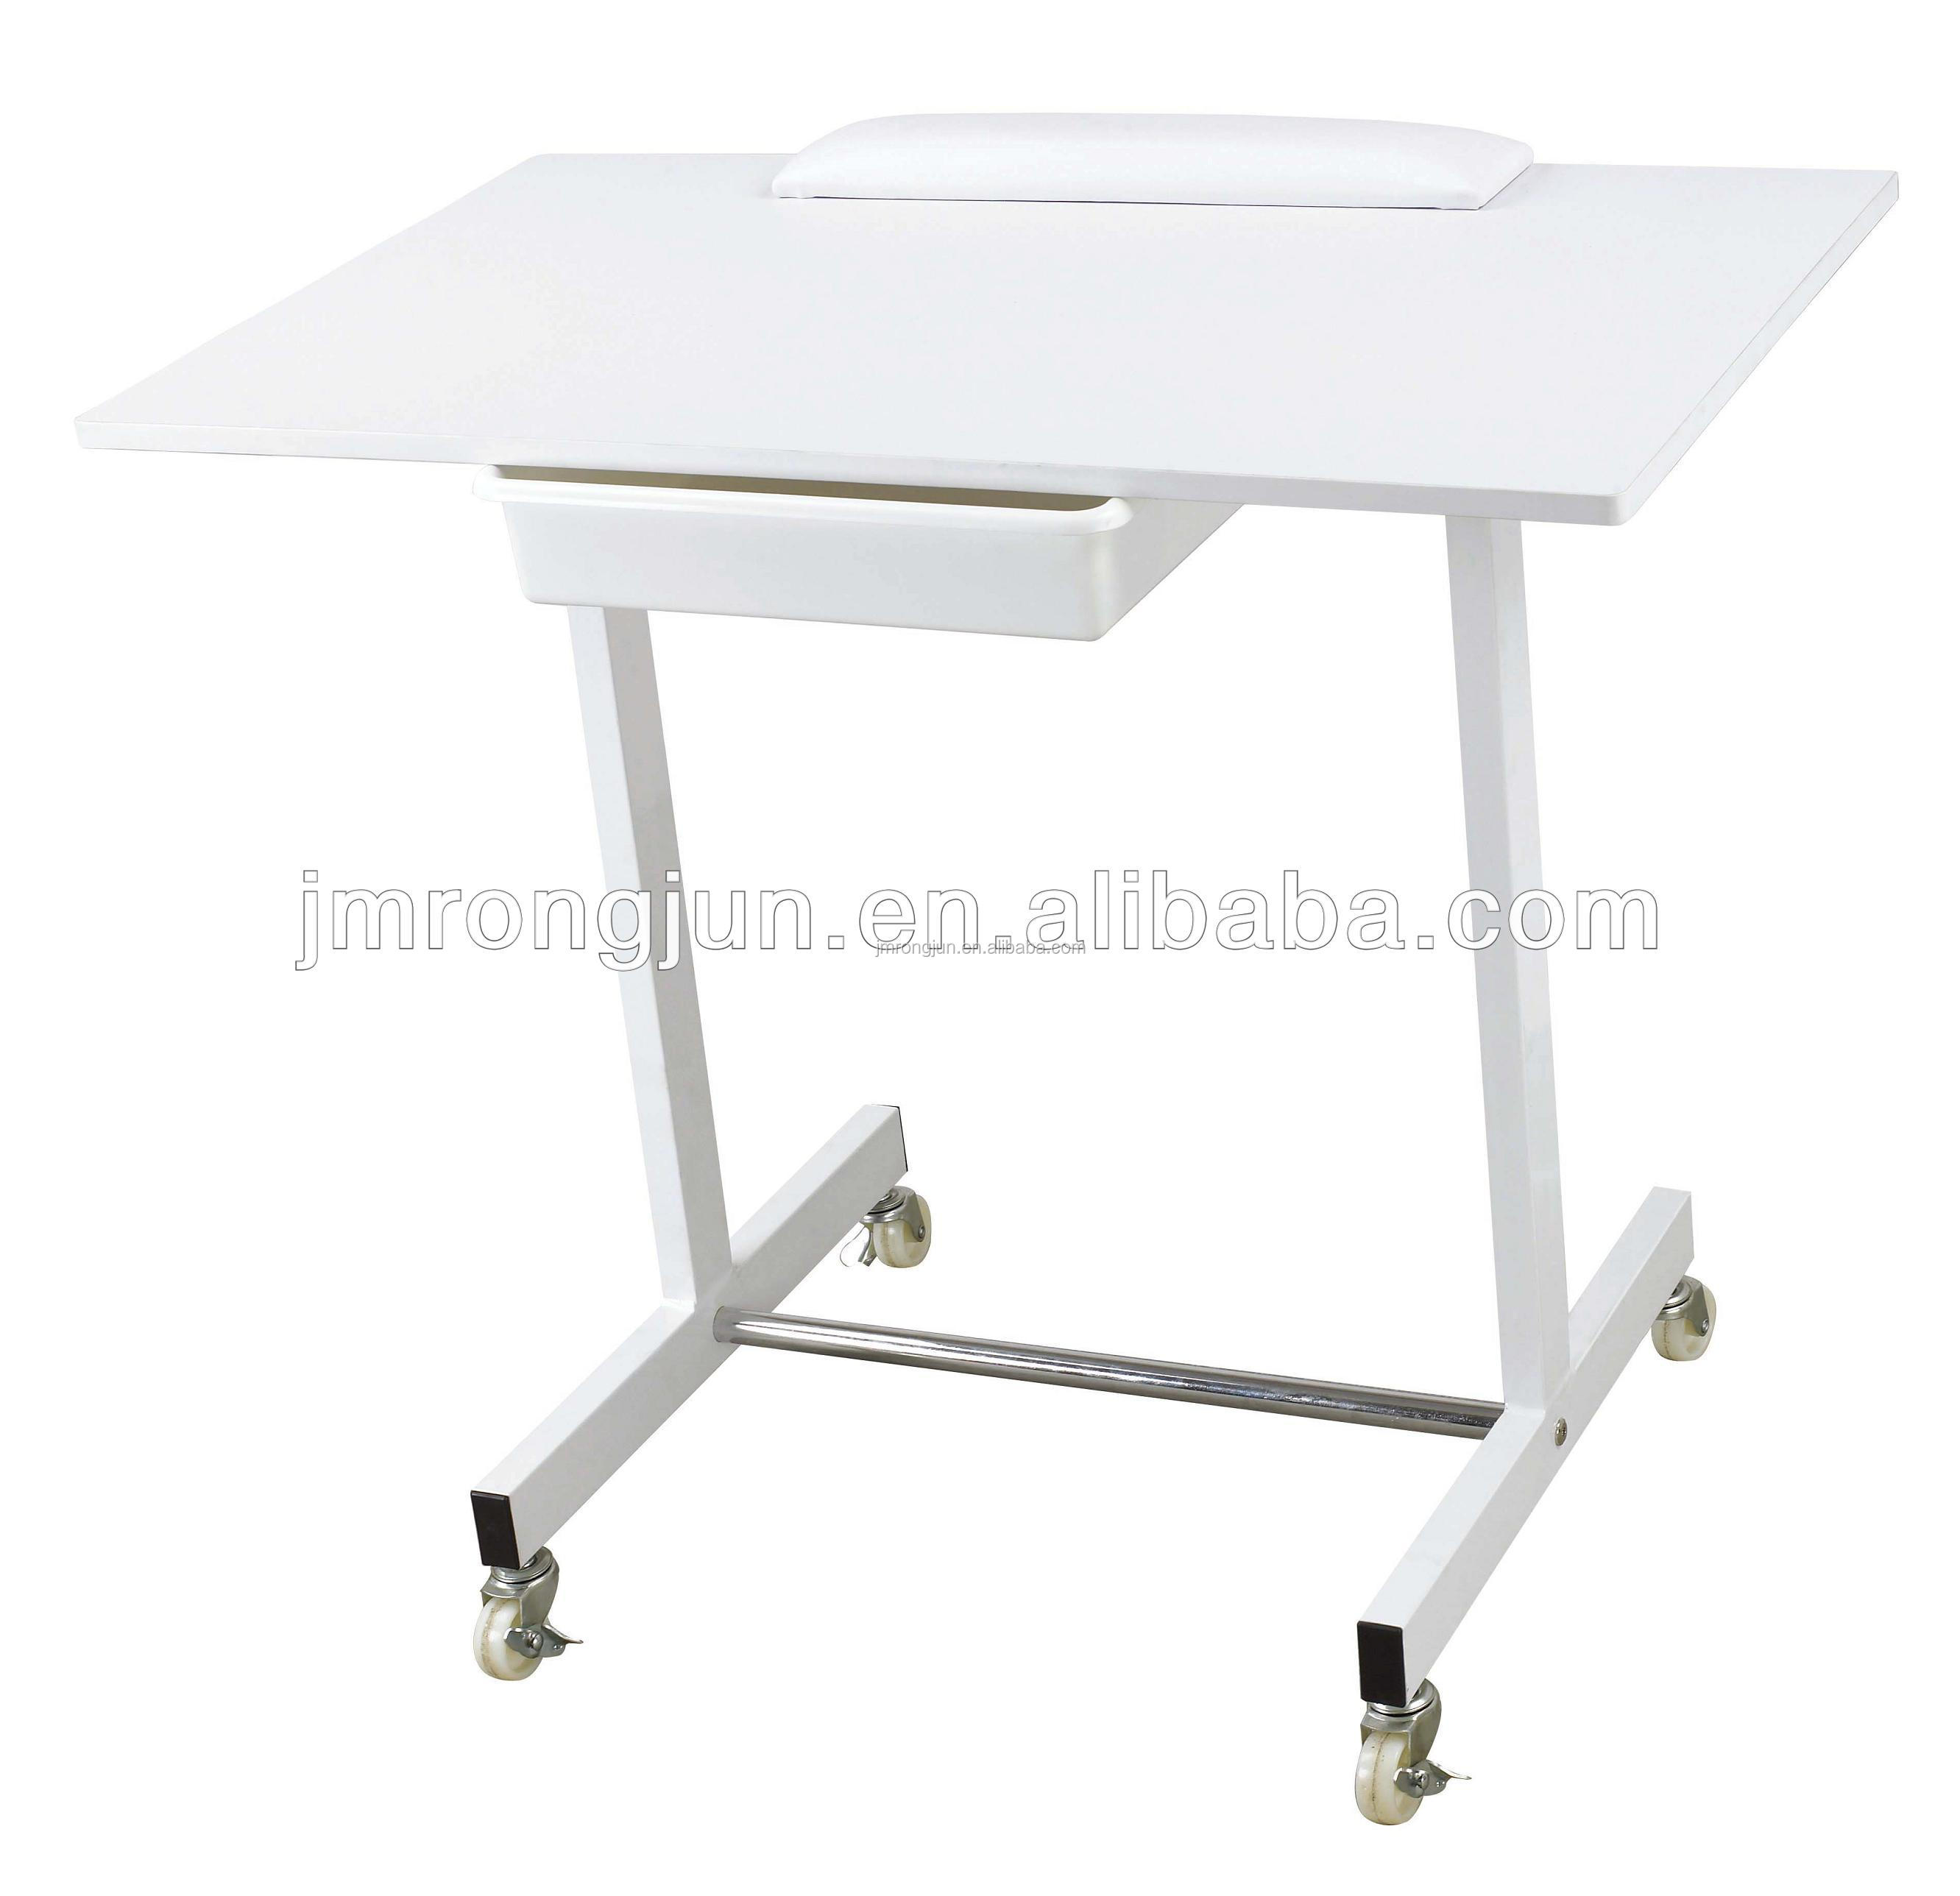 picasso shop comfortel for stone salon tables manicure beauty singapore table sale